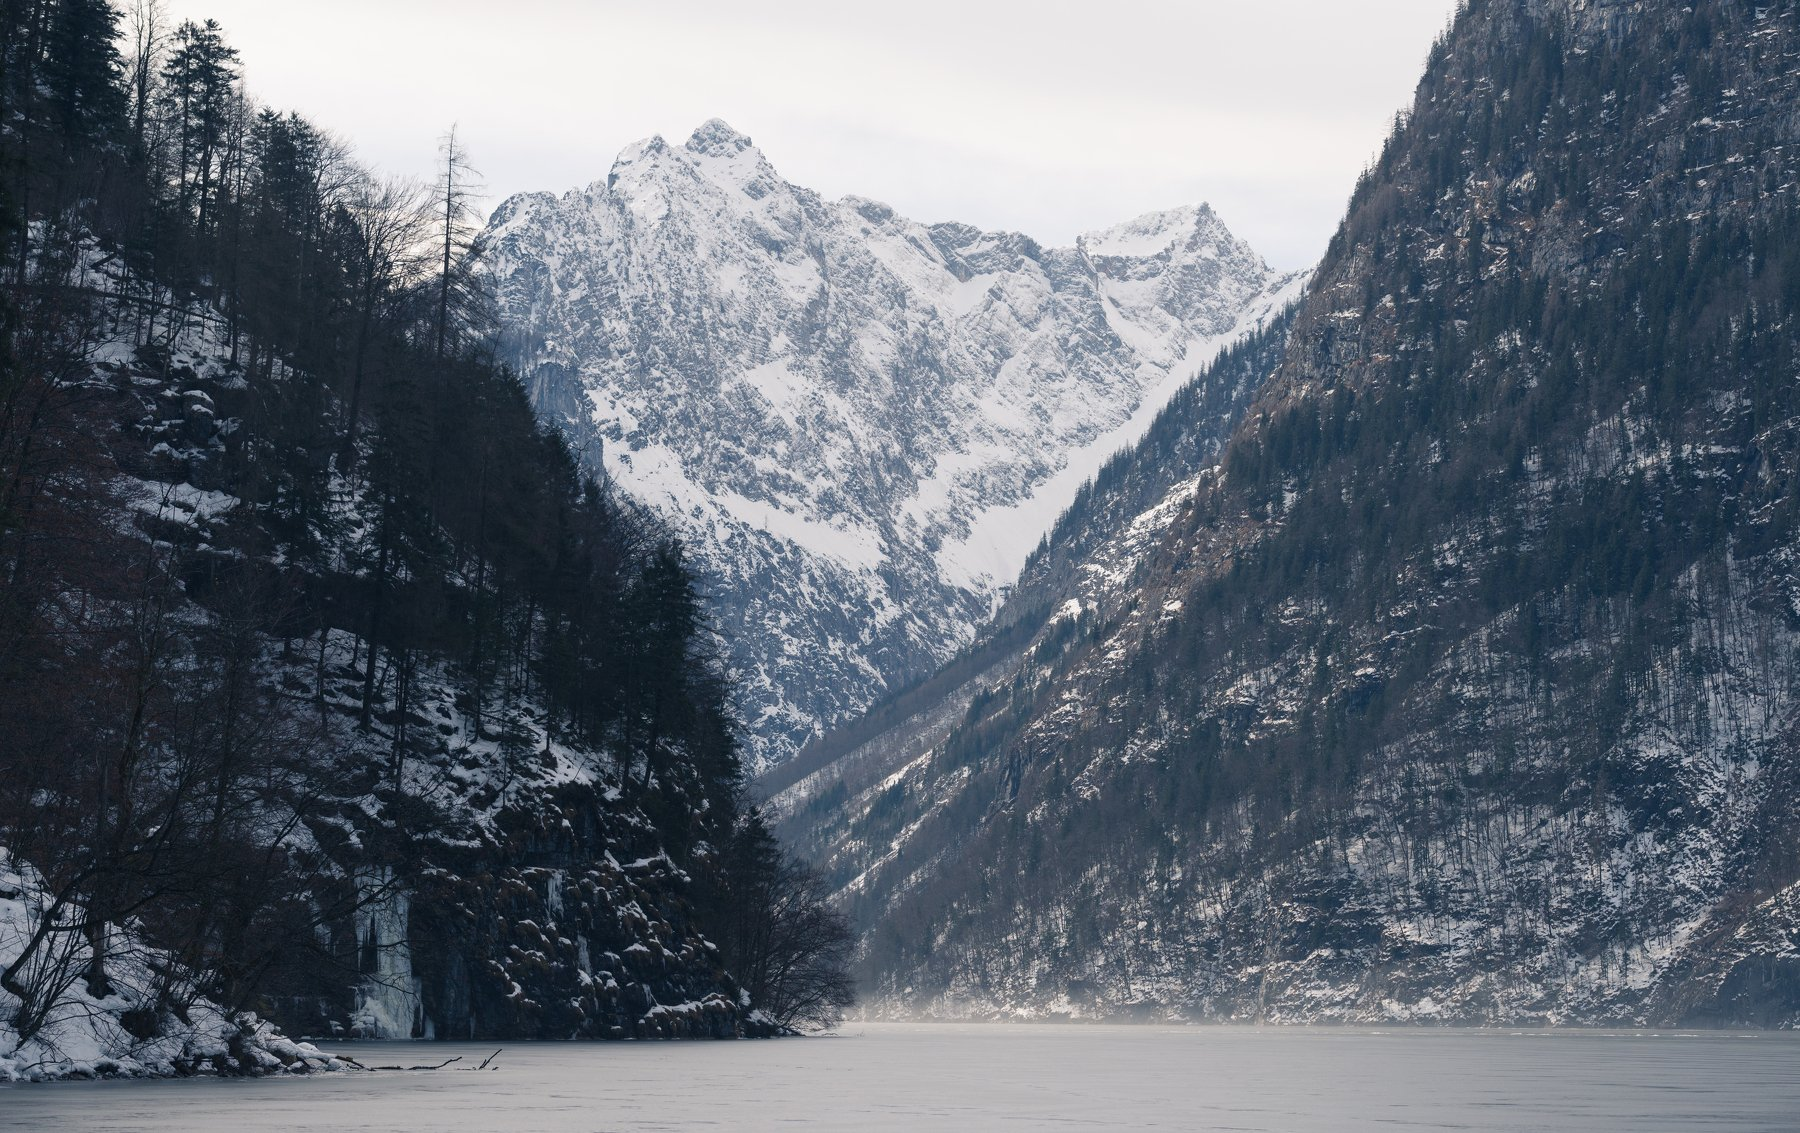 Alps, Germany, winter, frozen, lake, travel, IvanKravtsov